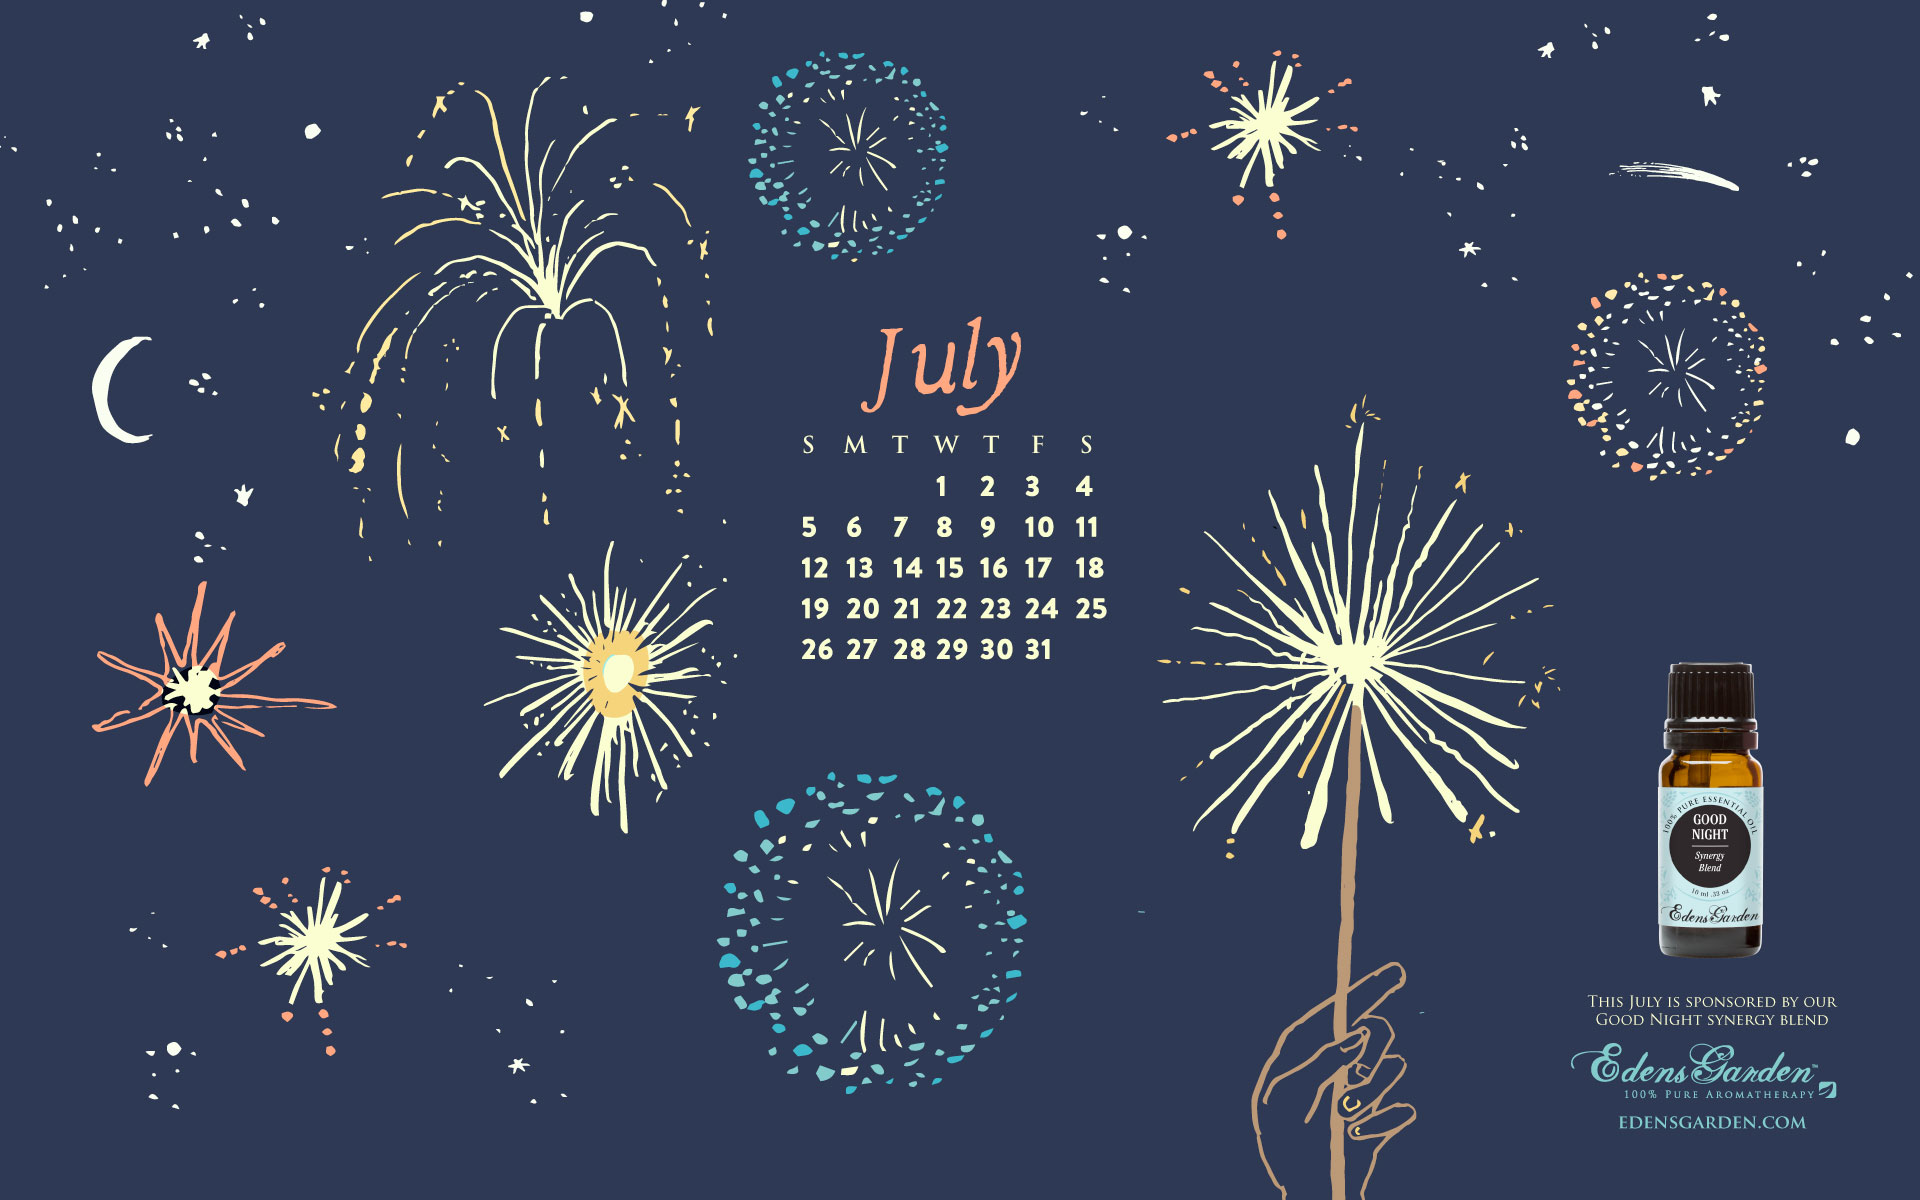 crosscards july wallpaper 2015